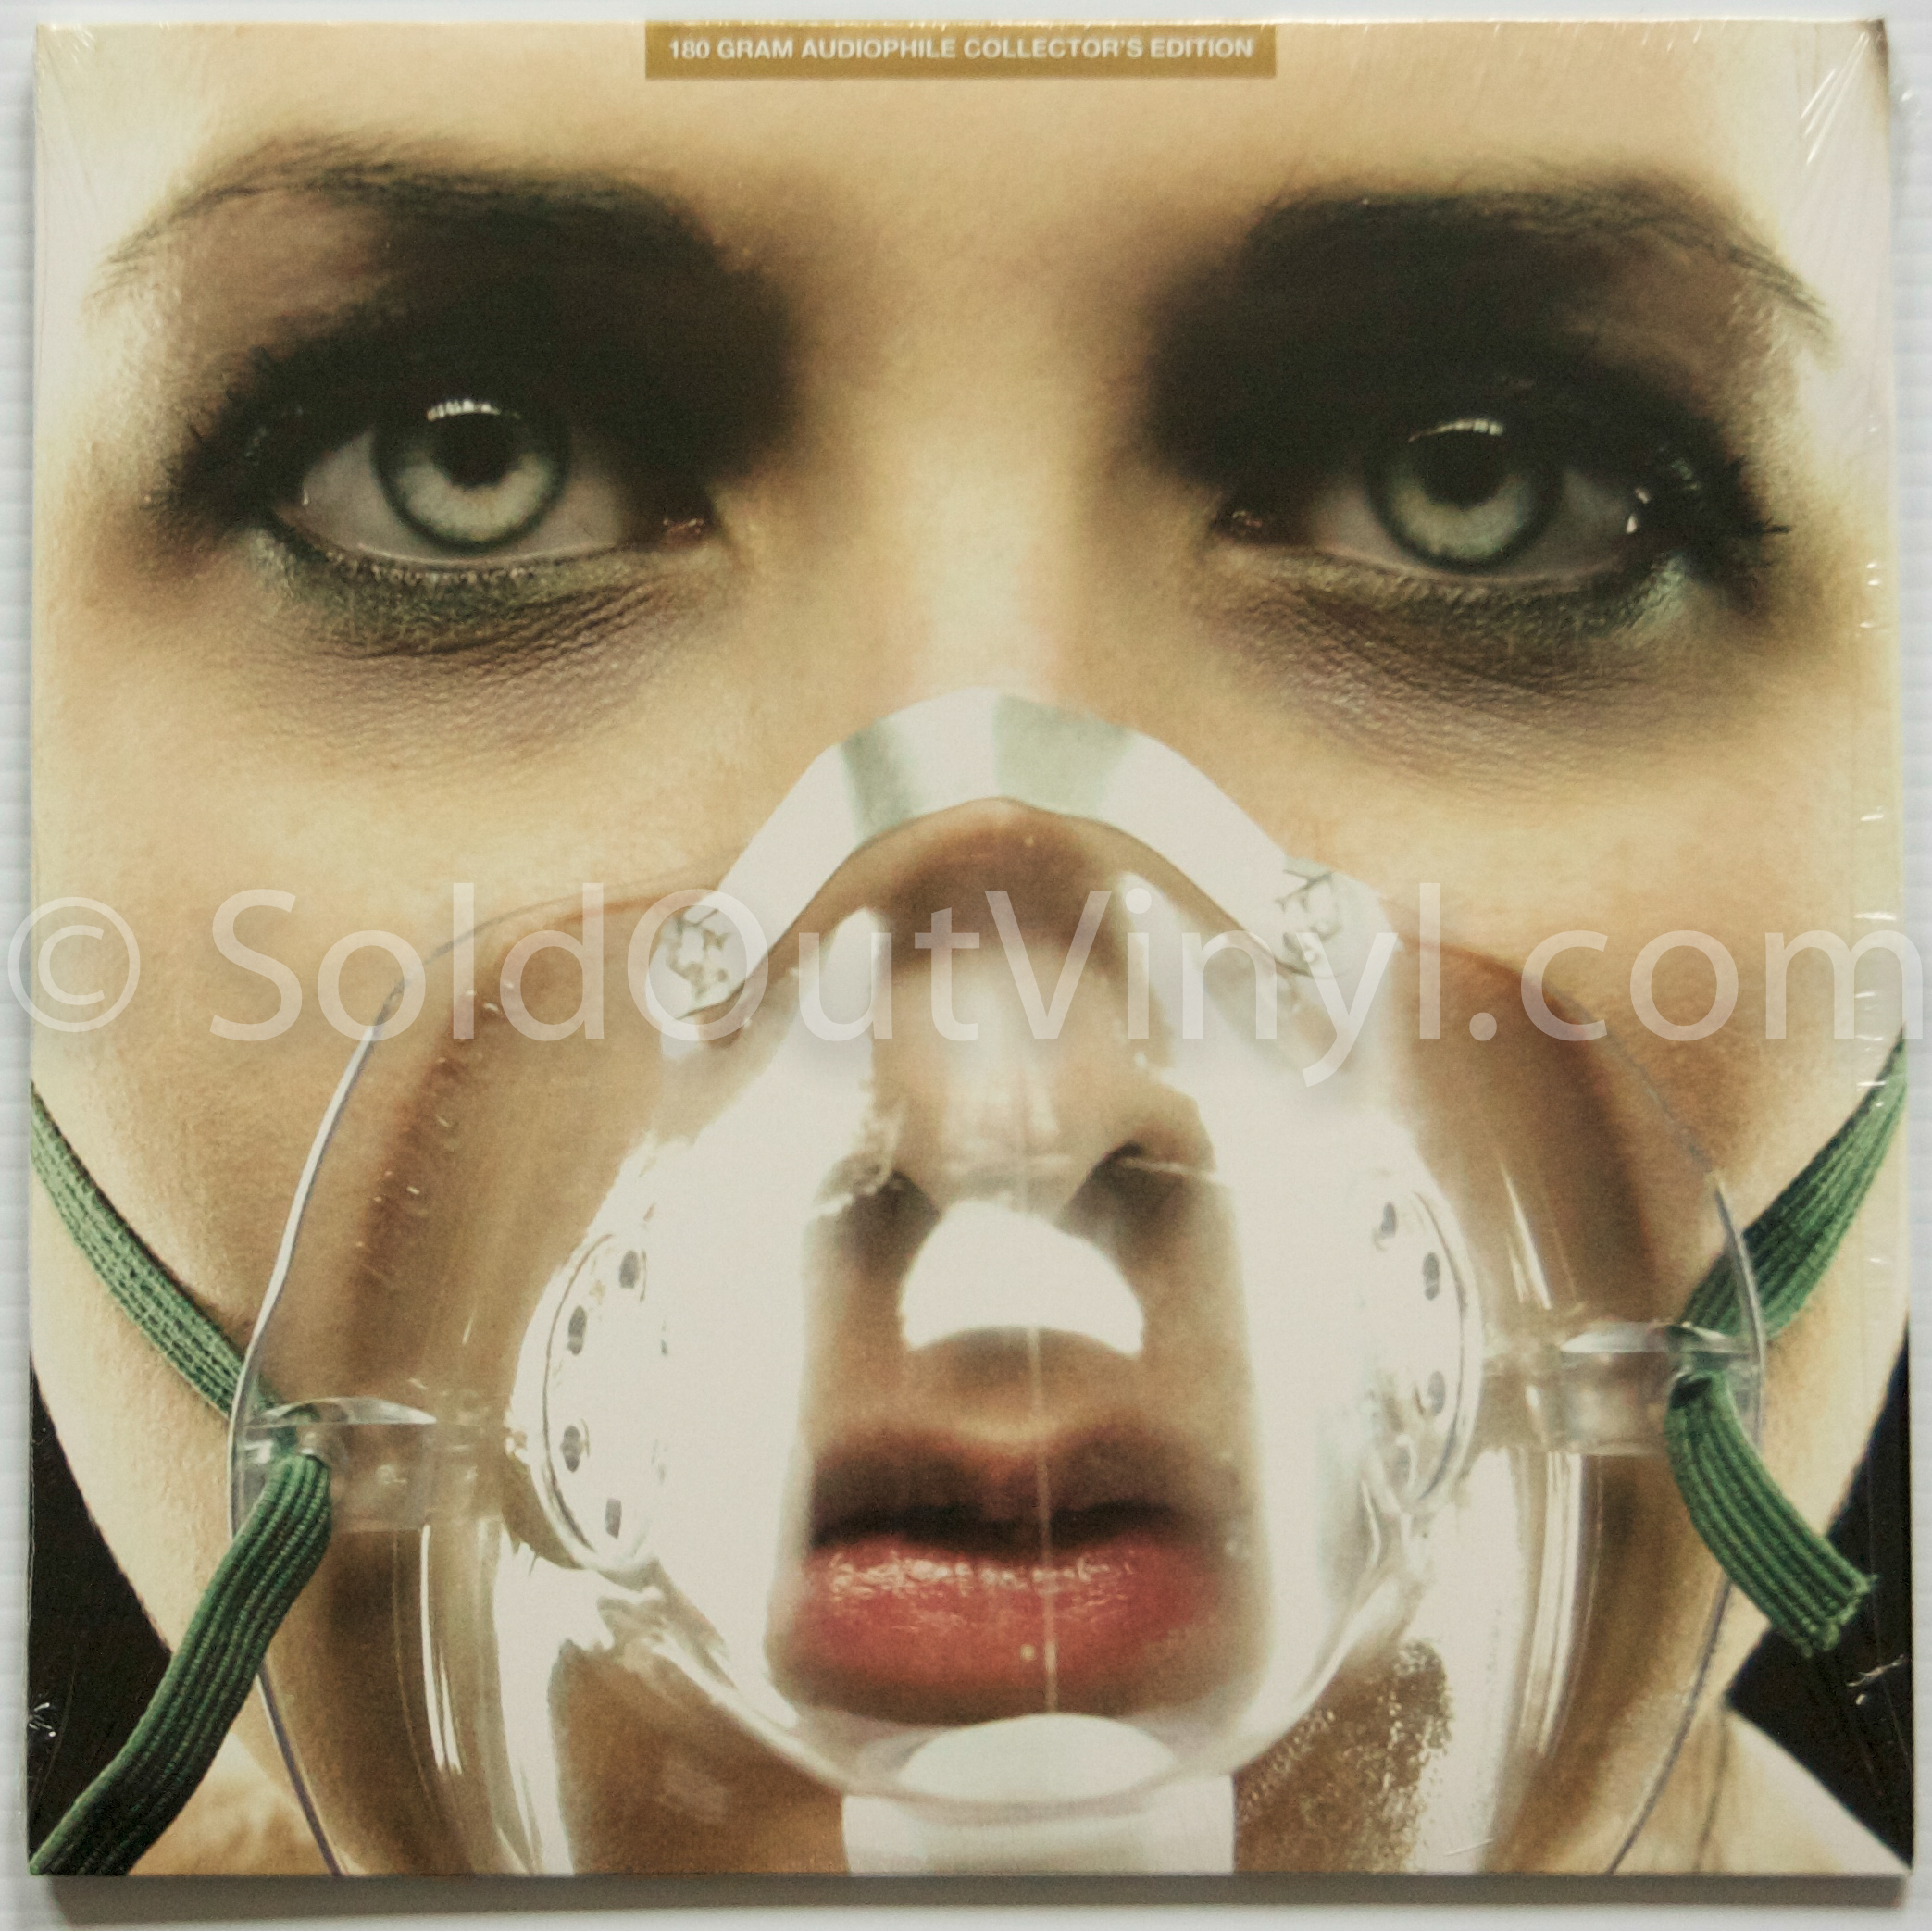 Underoath They Re Only Chasing Safety Vinyl Blue Lp